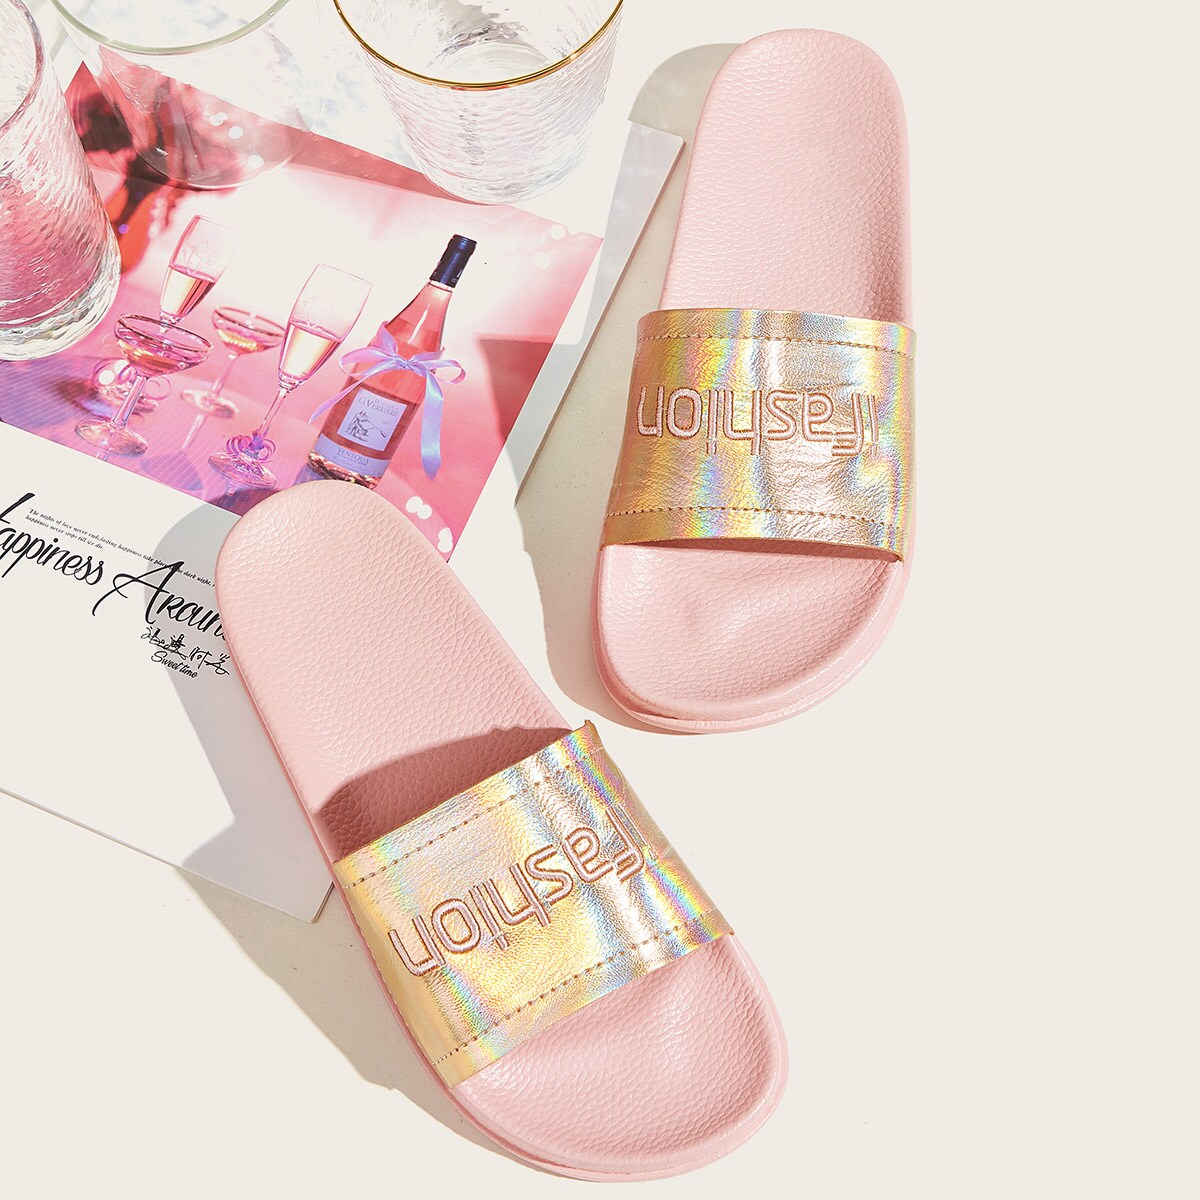 Letter Embroidered Iridescent Sliders in Multicolor by ROMWE on GOOFASH